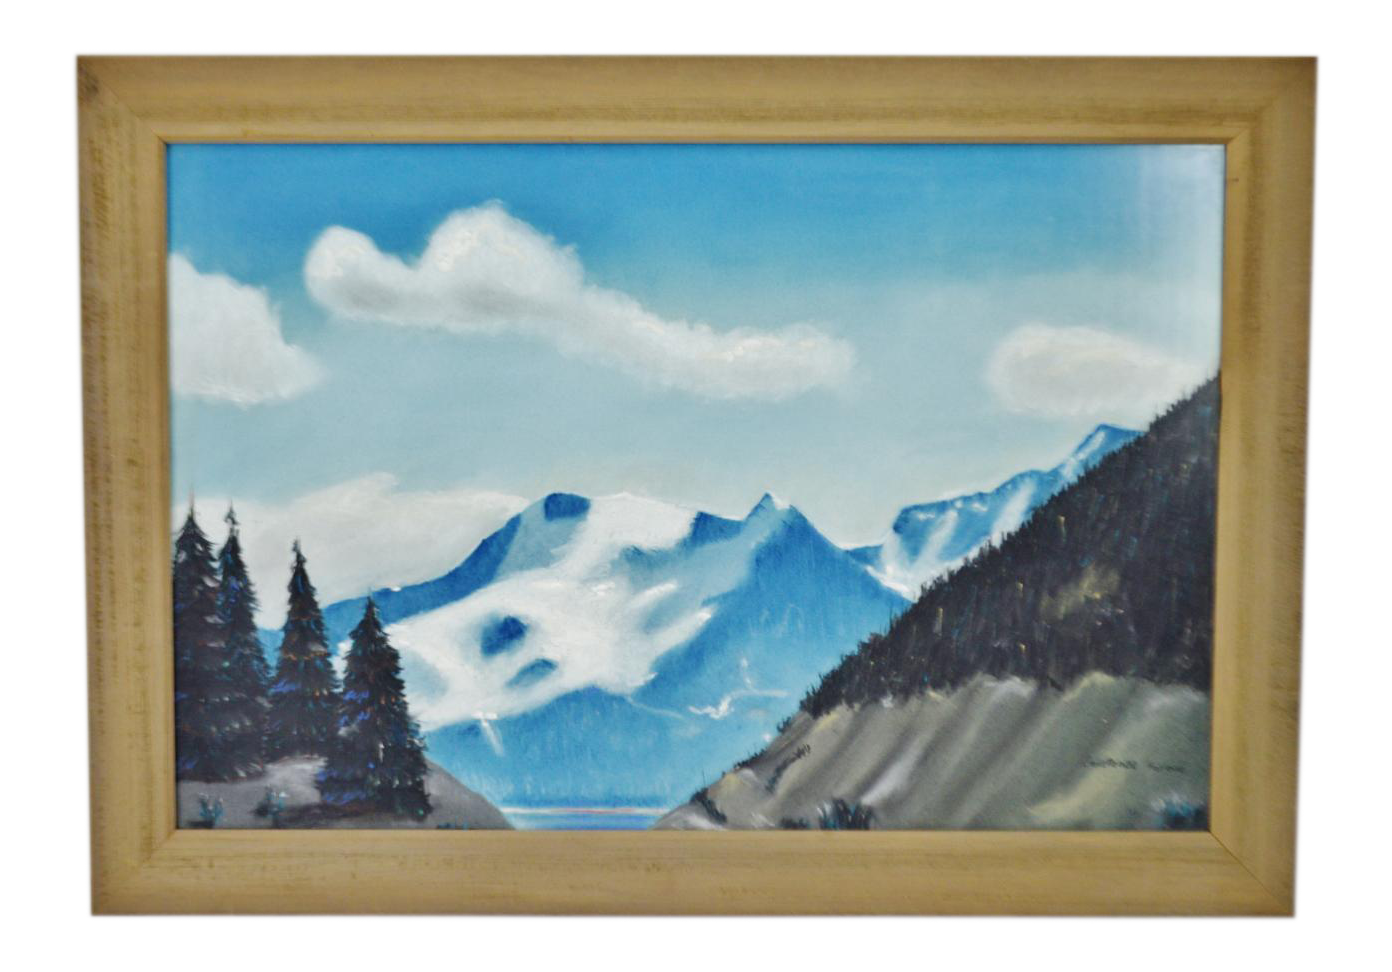 Landforms drawing realistic. Vintage rustic framed mountain